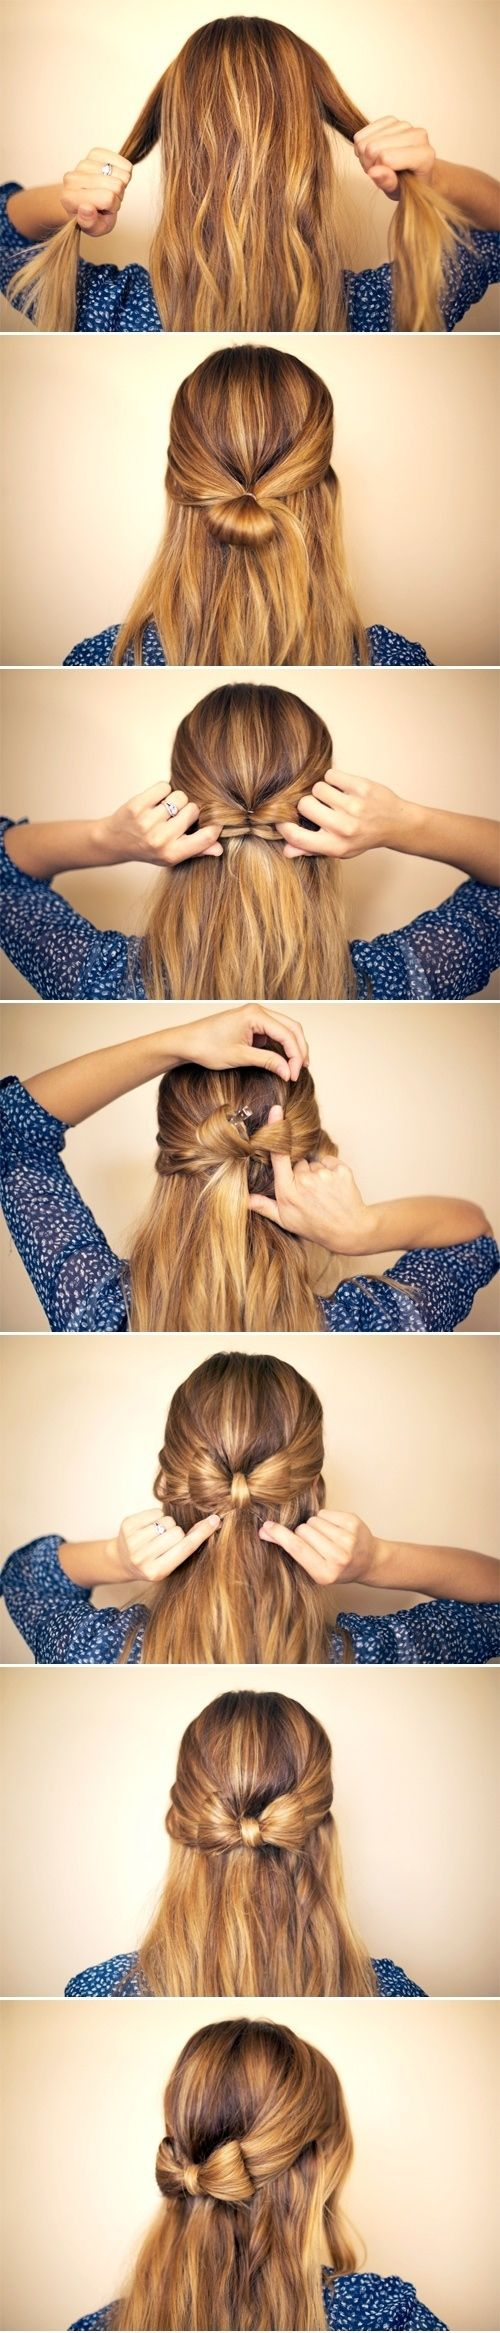 The Princess Hair Bow | 24 Statement Hairstyles For Your New Year's Eve Party